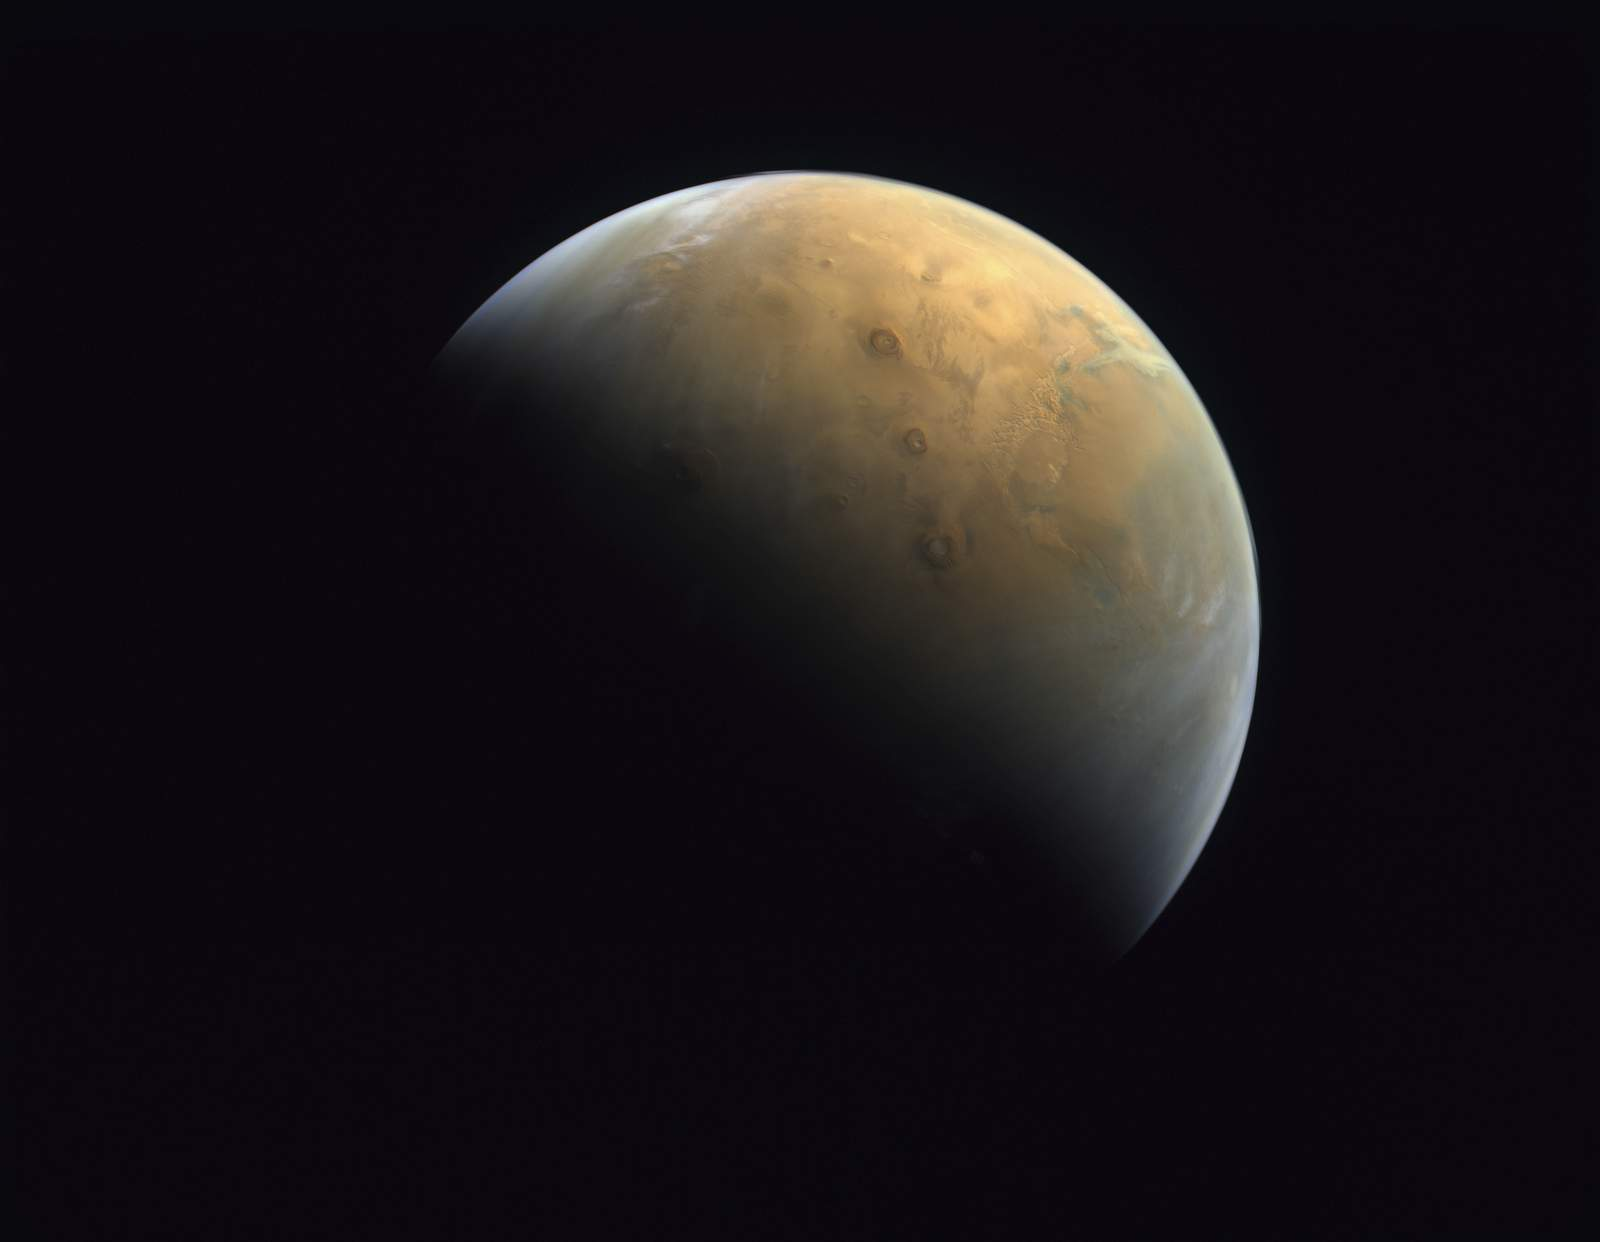 United Arab Emirates publishes first photo from Mars probe